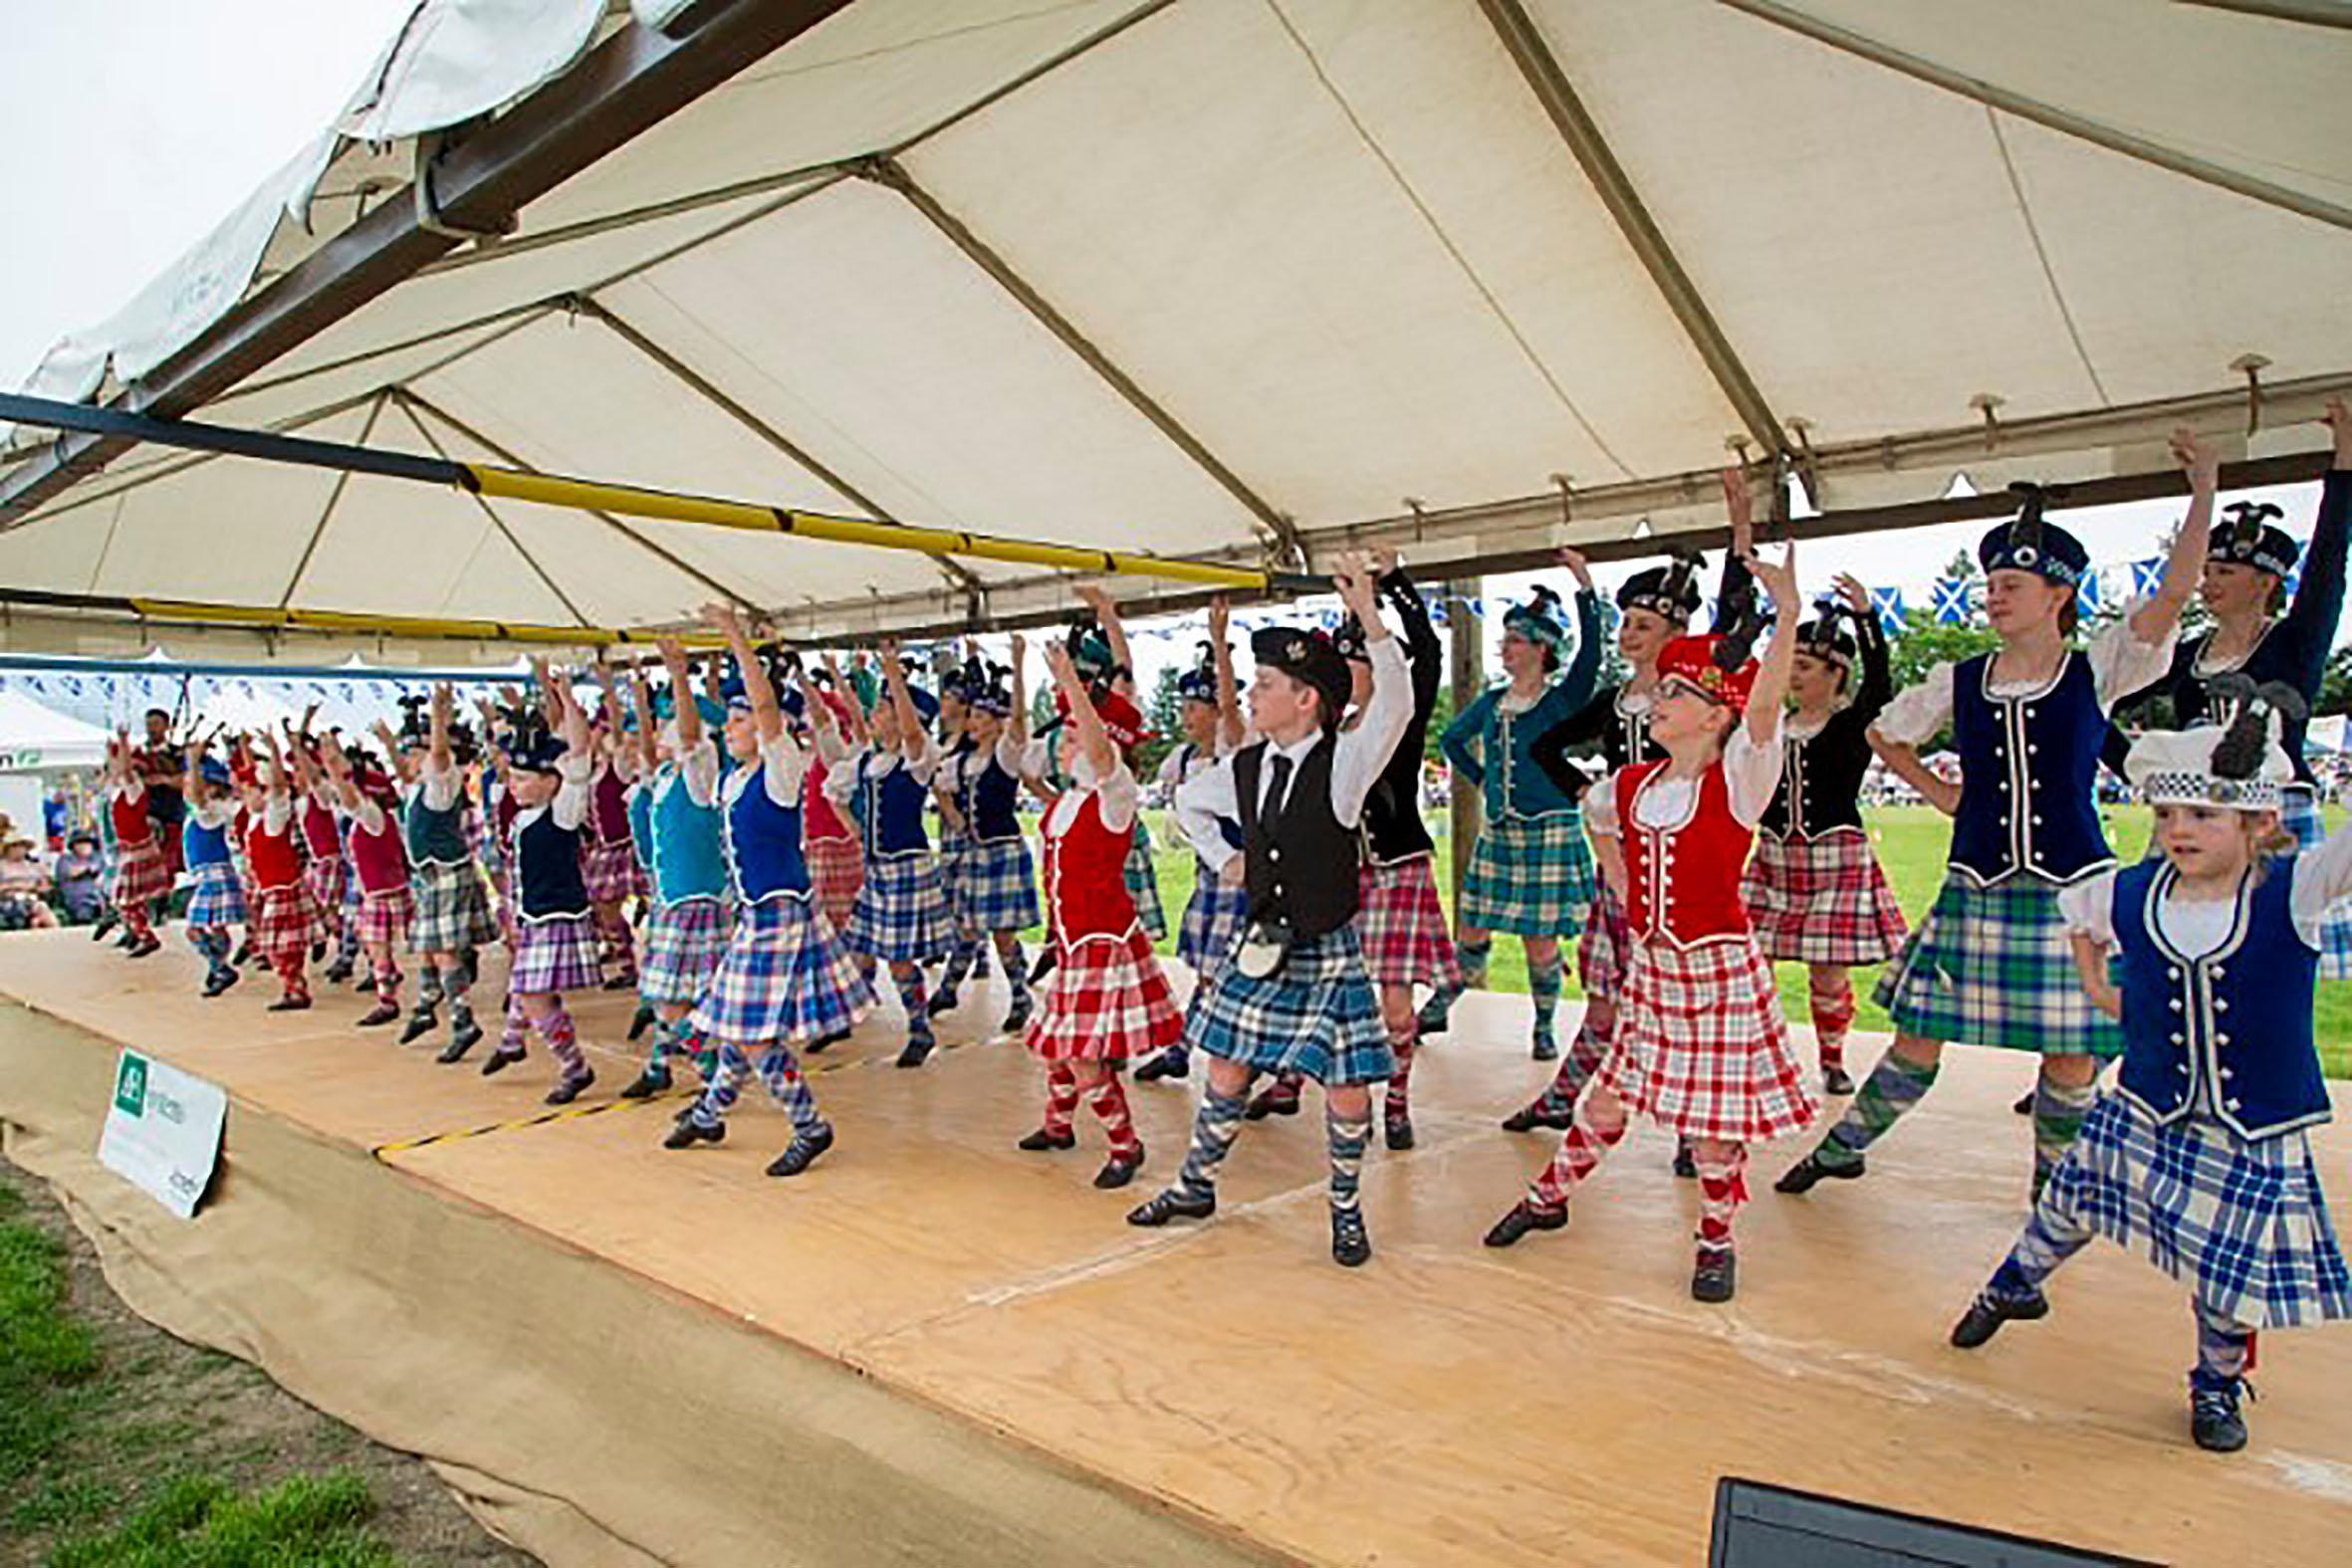 Young Highland dancers go through their routine at the Hororata Highland Games. Photo: Supplied